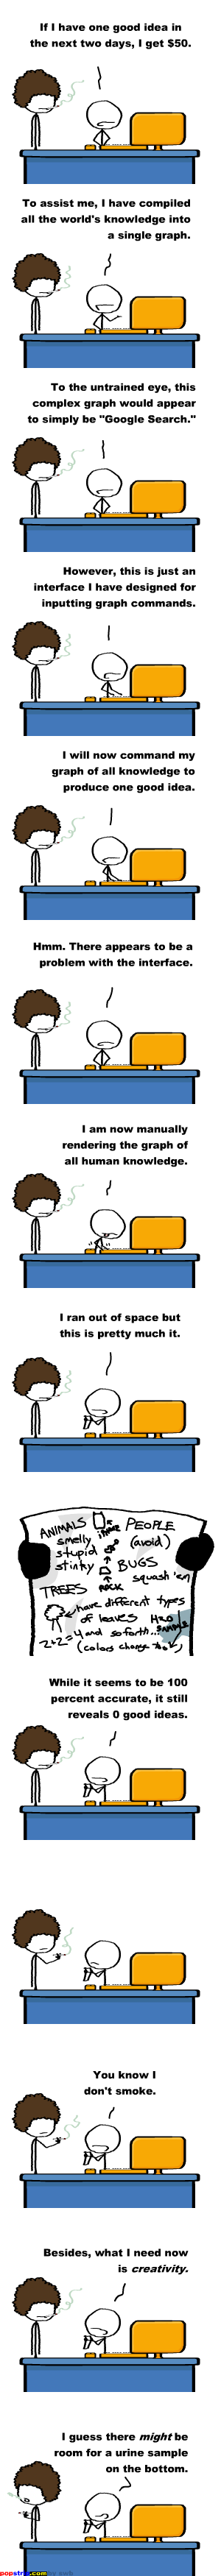 http://popstrip.com/s/dude-gets-idea-3/20101006-dude-gets-idea-3.png